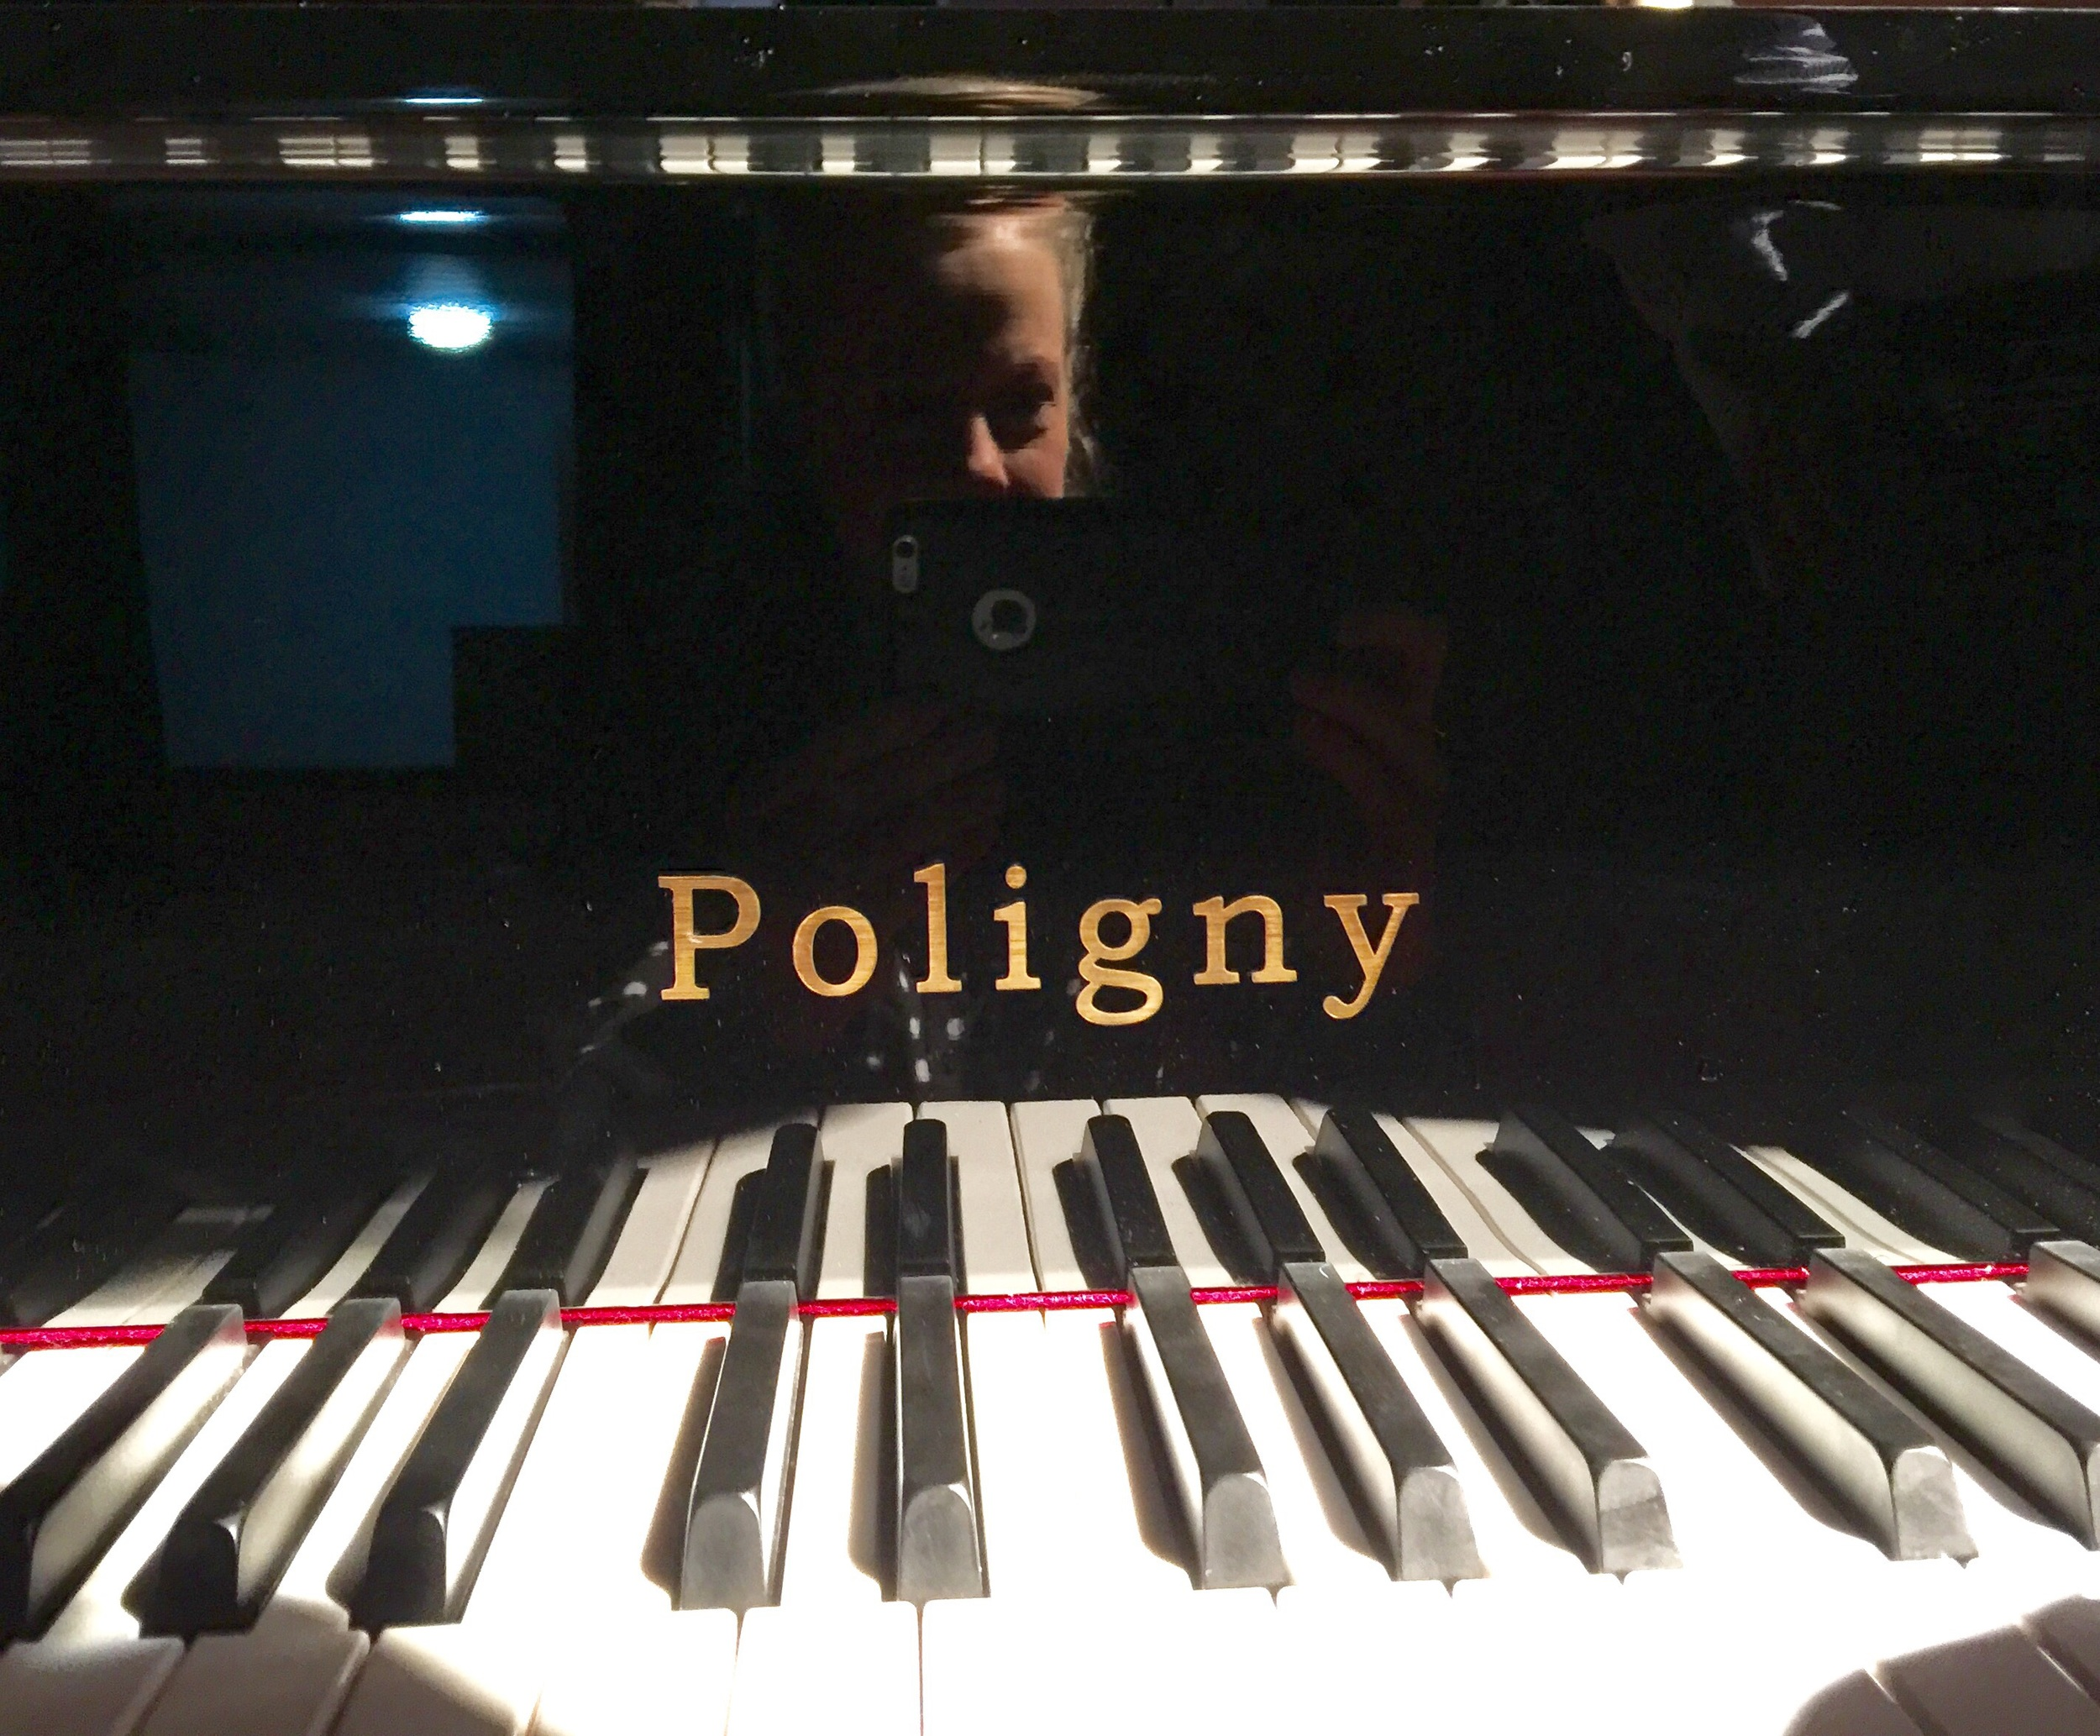 Good, not great. The Poligny instrument is a fine performance piano but perhaps not my first choice.